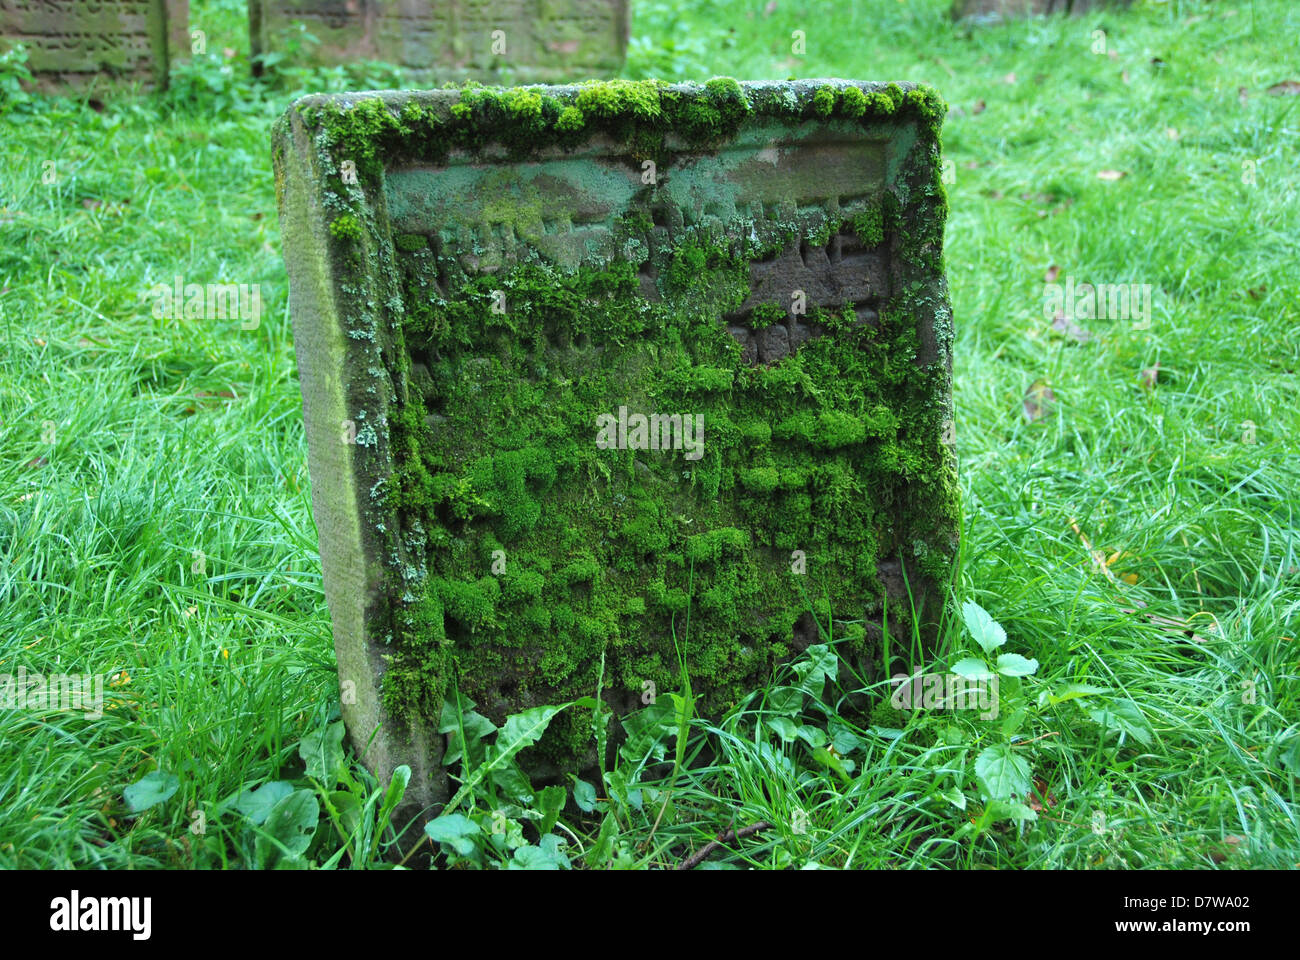 Mossy Jewish grave with Hebrew script - Stock Image